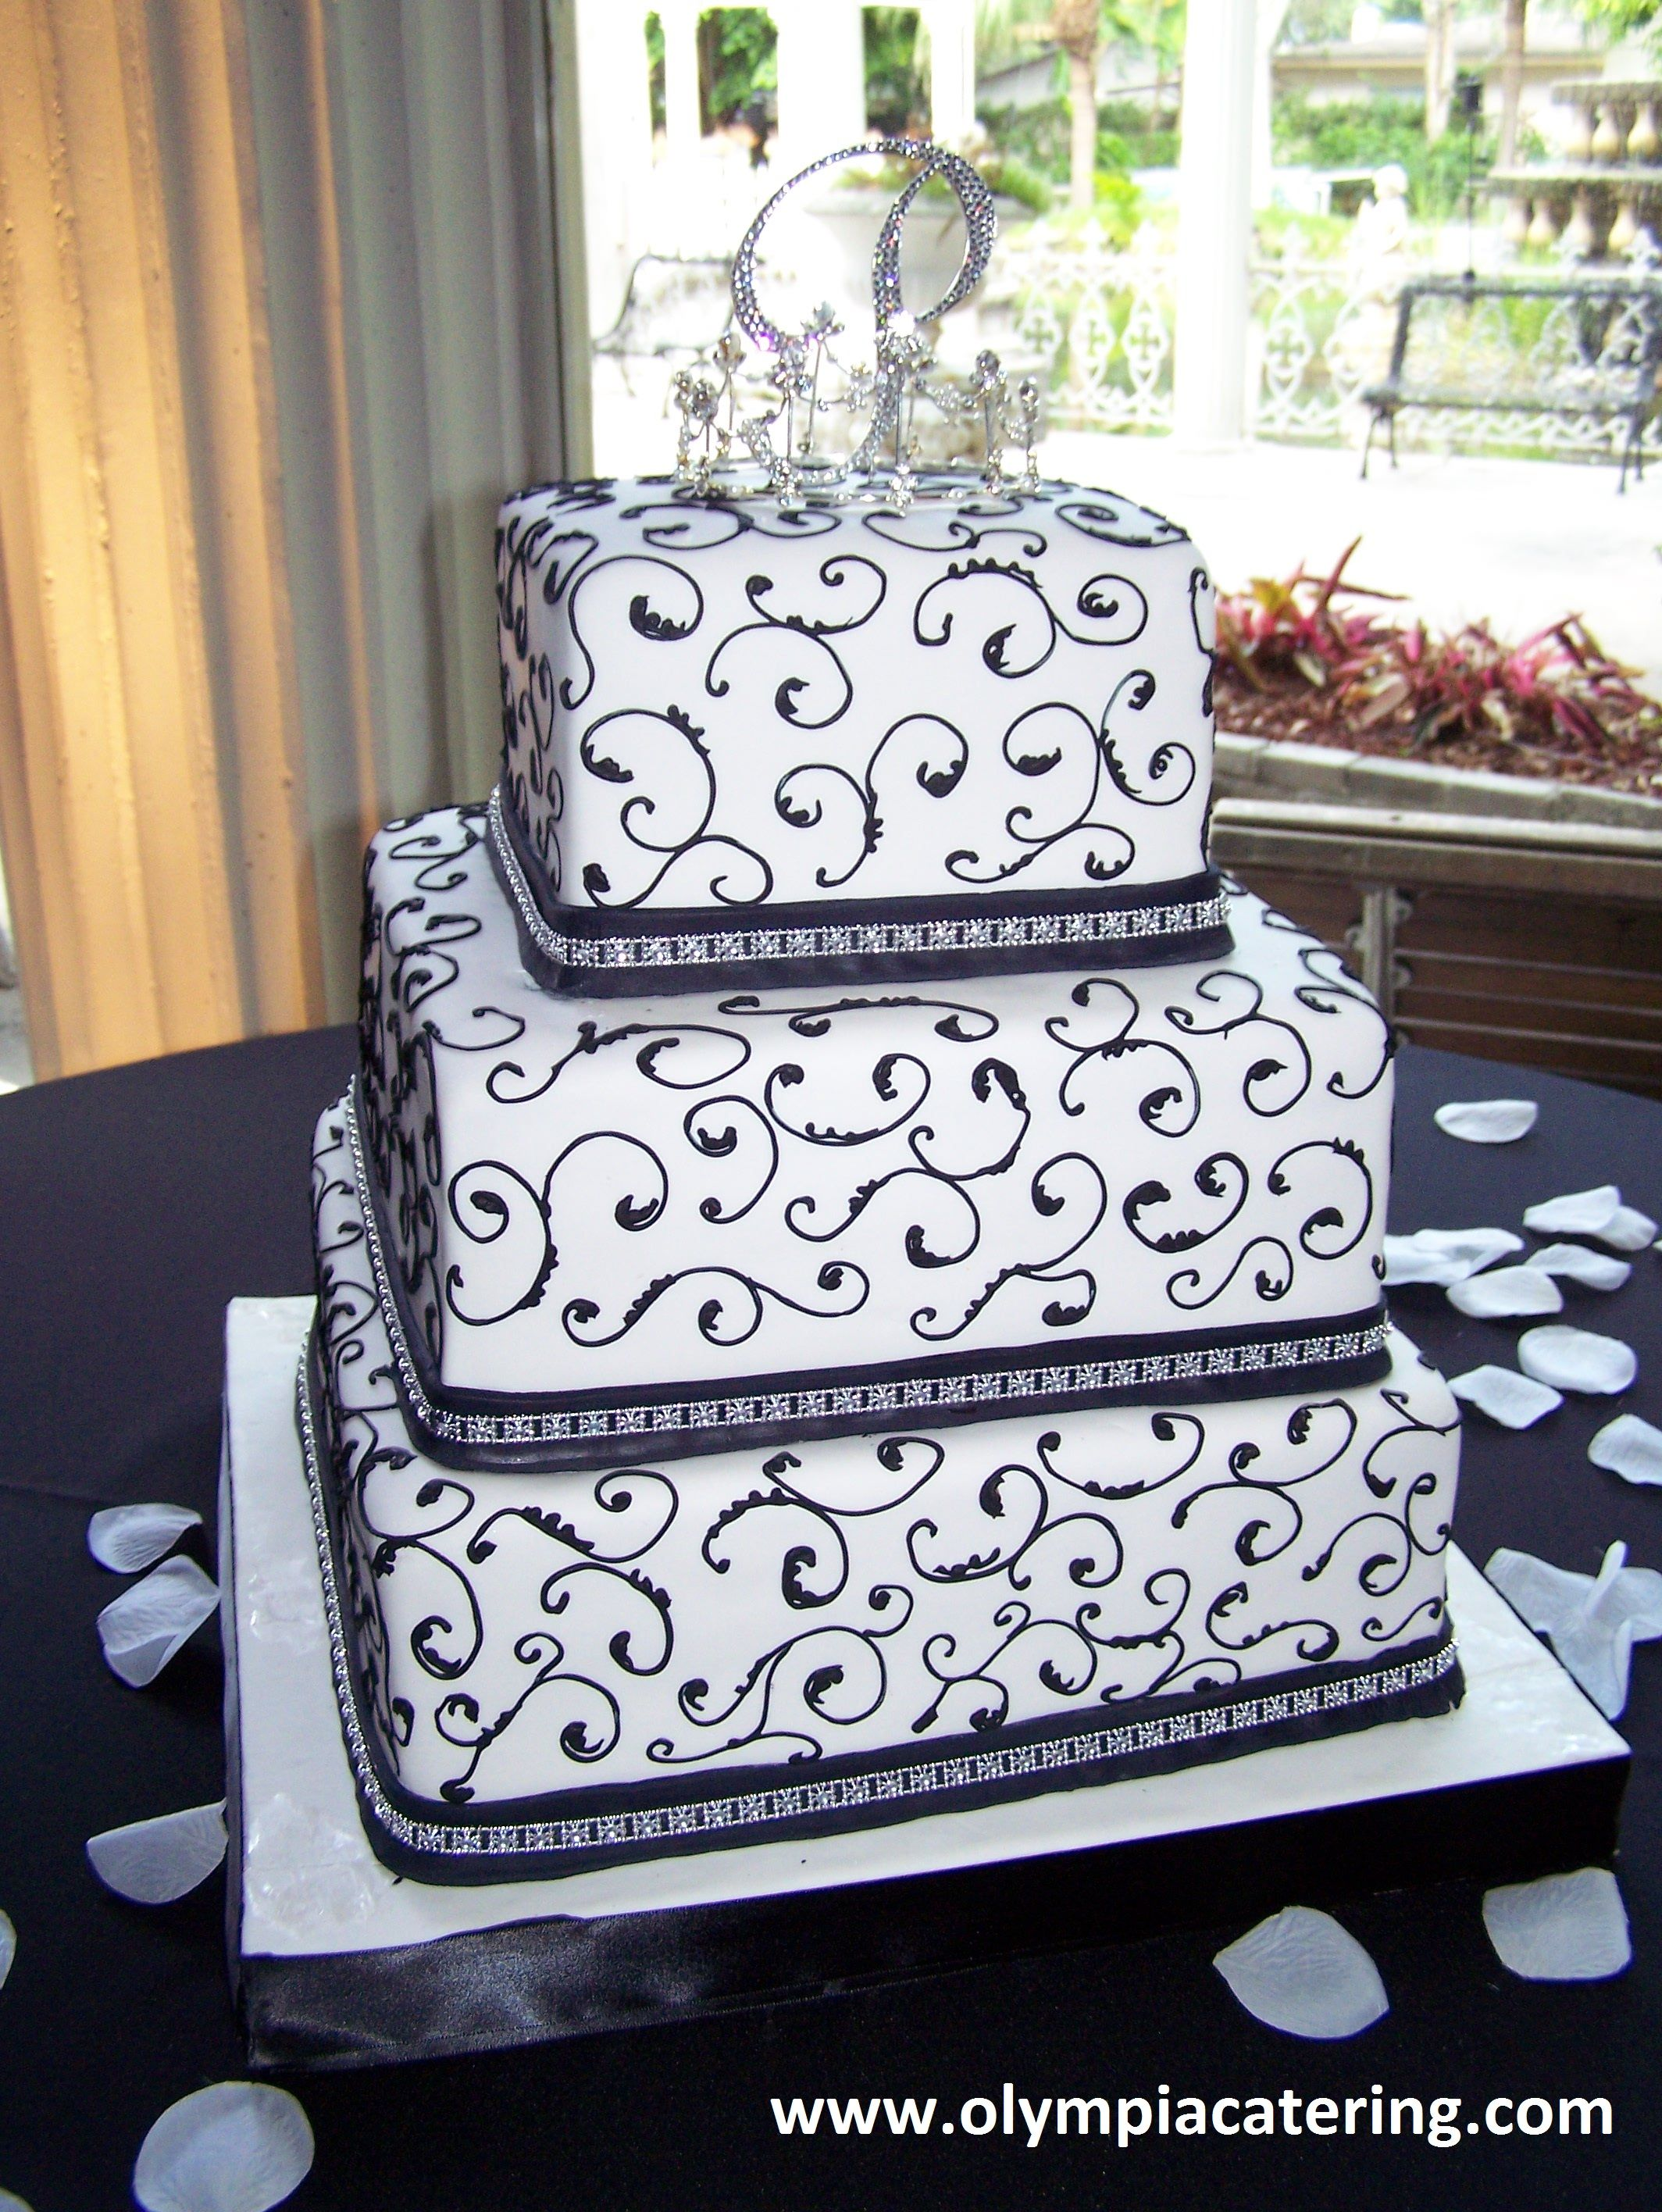 square black and white wedding cakes pictures%0A Square Wedding Cake  Fondant  Navy Piping  Navy Ribbon  Three Tiers